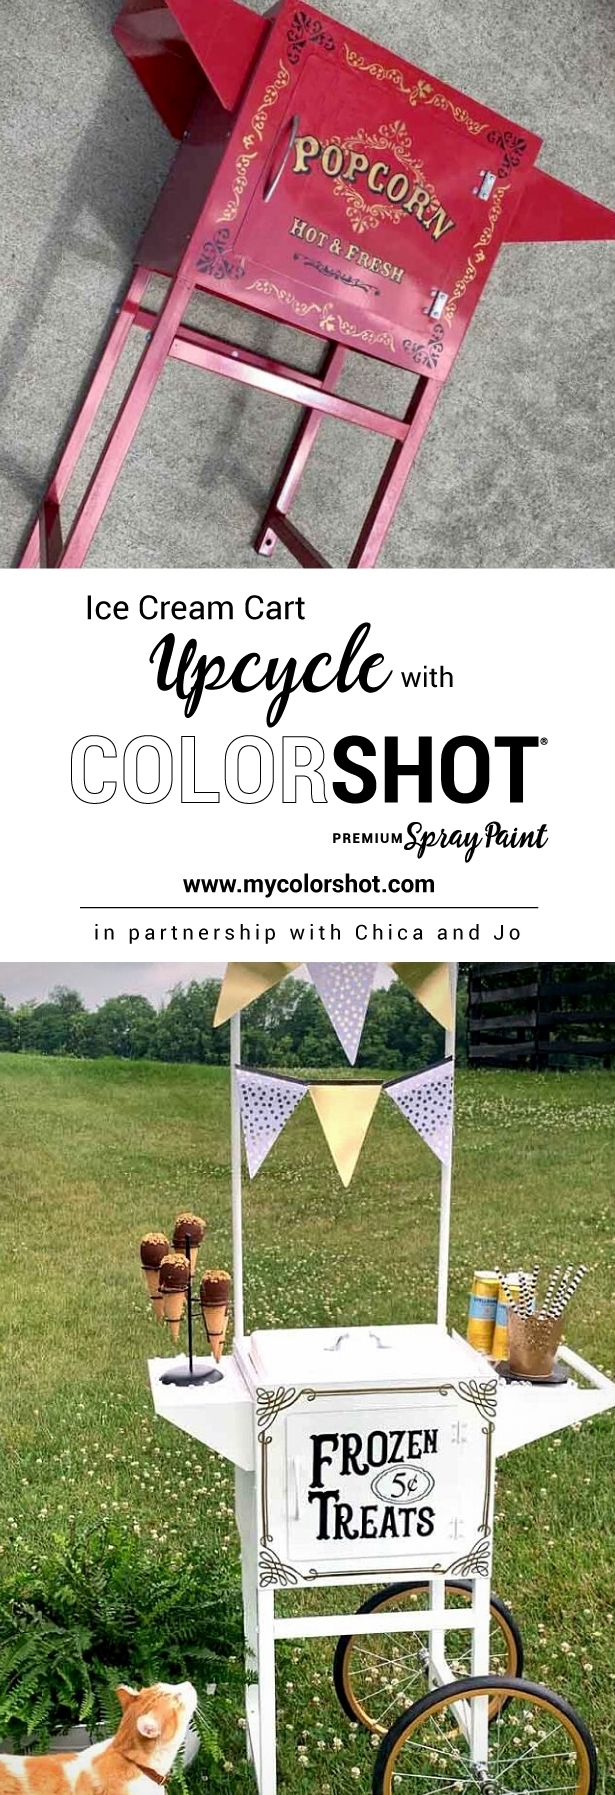 Ice Cream Cart Upcycle Project